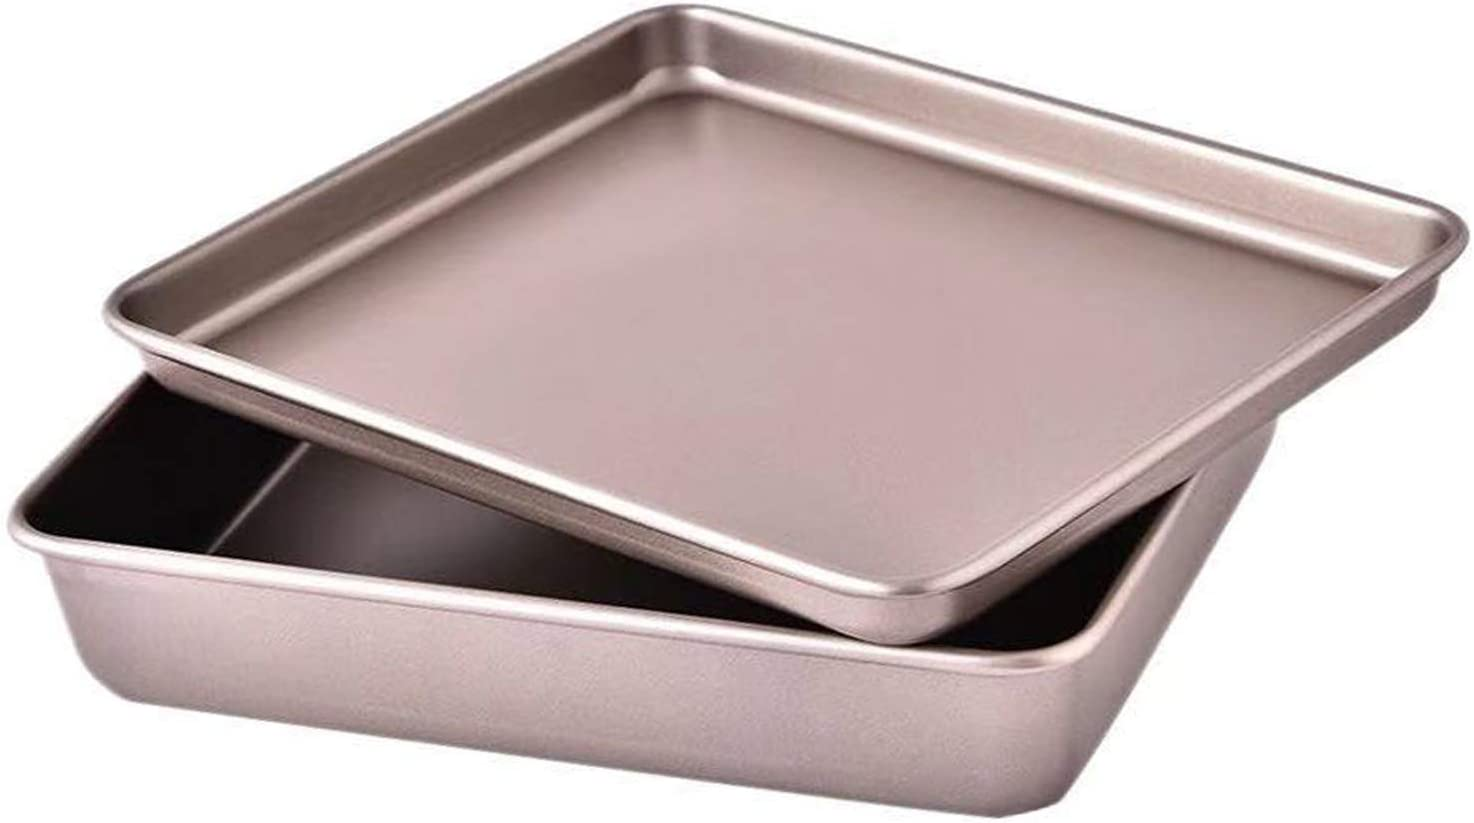 2Pcs Small Cookie Sheets 11 X 9 Inch Mini Baking Trays Toaster Oven Replacement Nonstick Thicken Heavy Carbon Steel No Warp Bakeware by HYTK